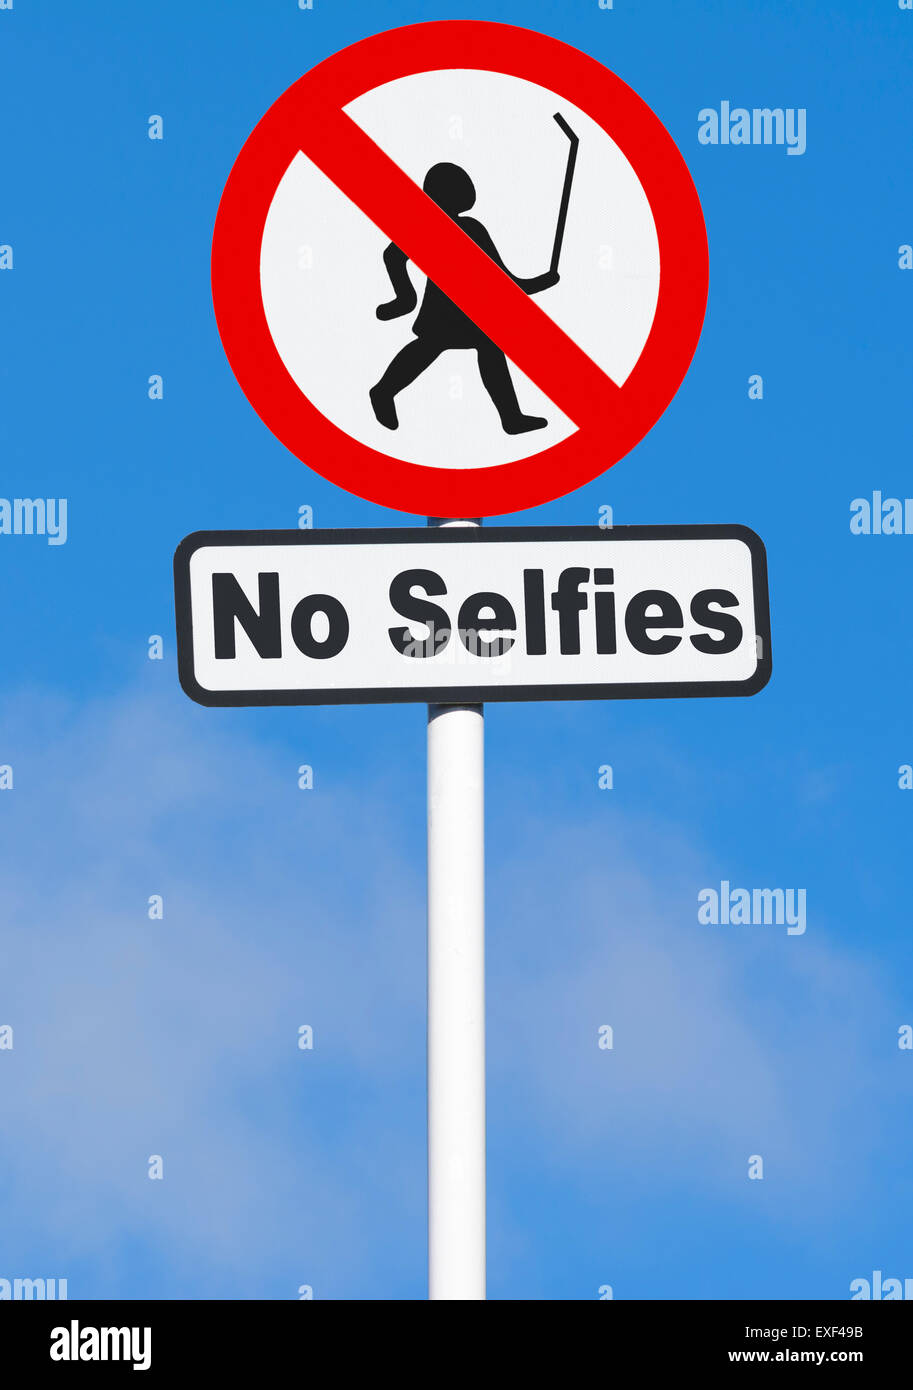 'No Selfies' warning sign. - Stock Image